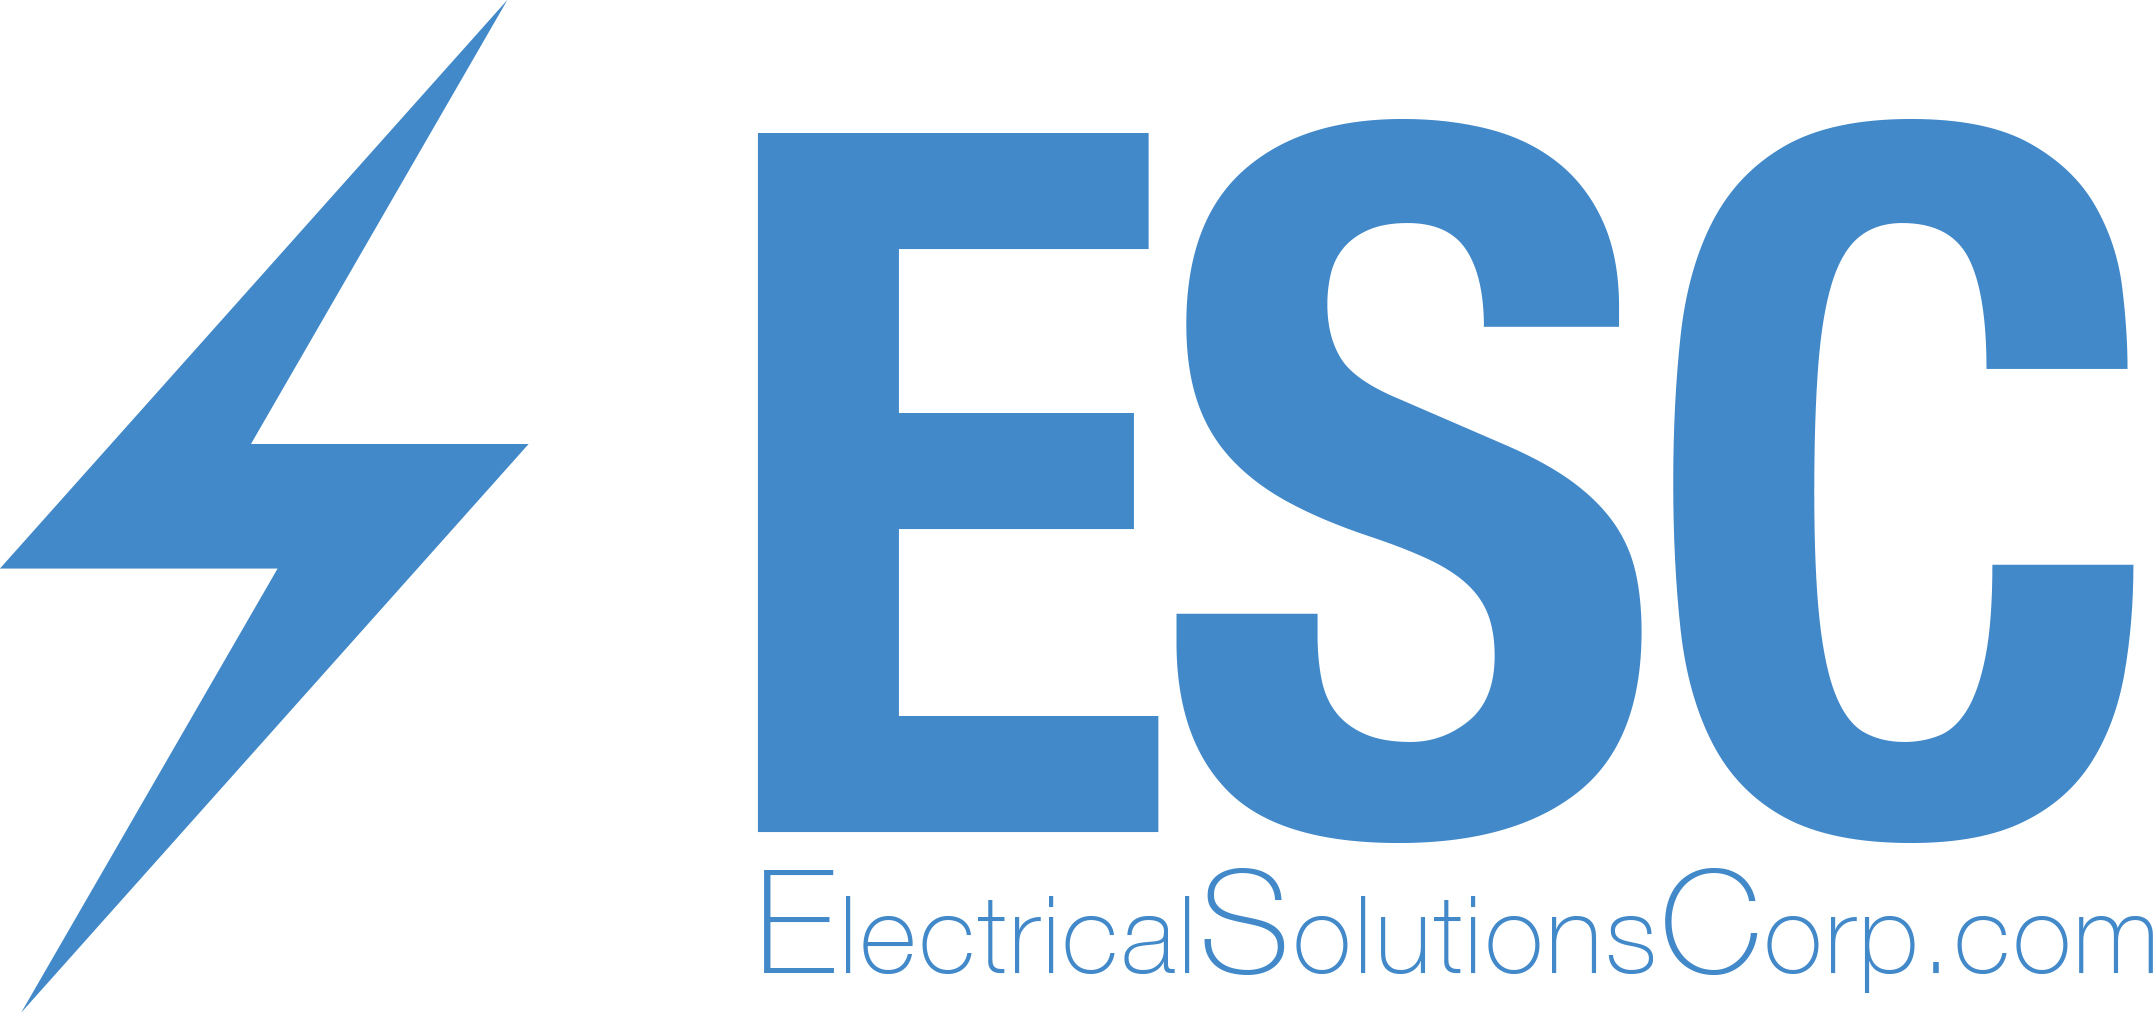 Electrical Solutions Corp